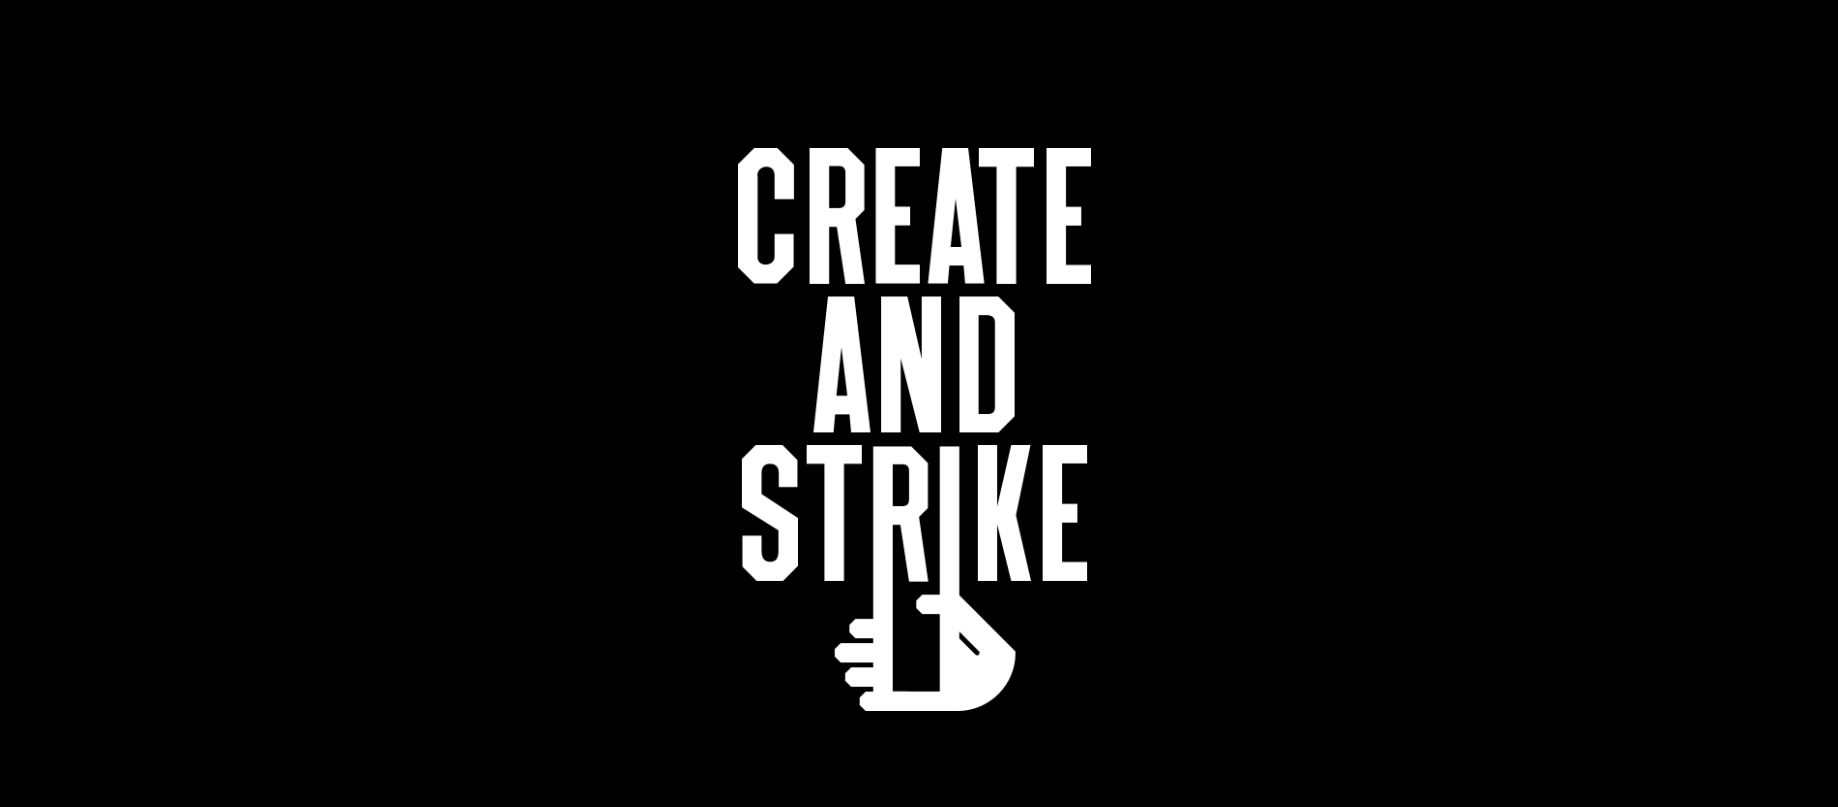 Call for Creative Industry Leaders to Pledge Their Support to the Global Climate Strike